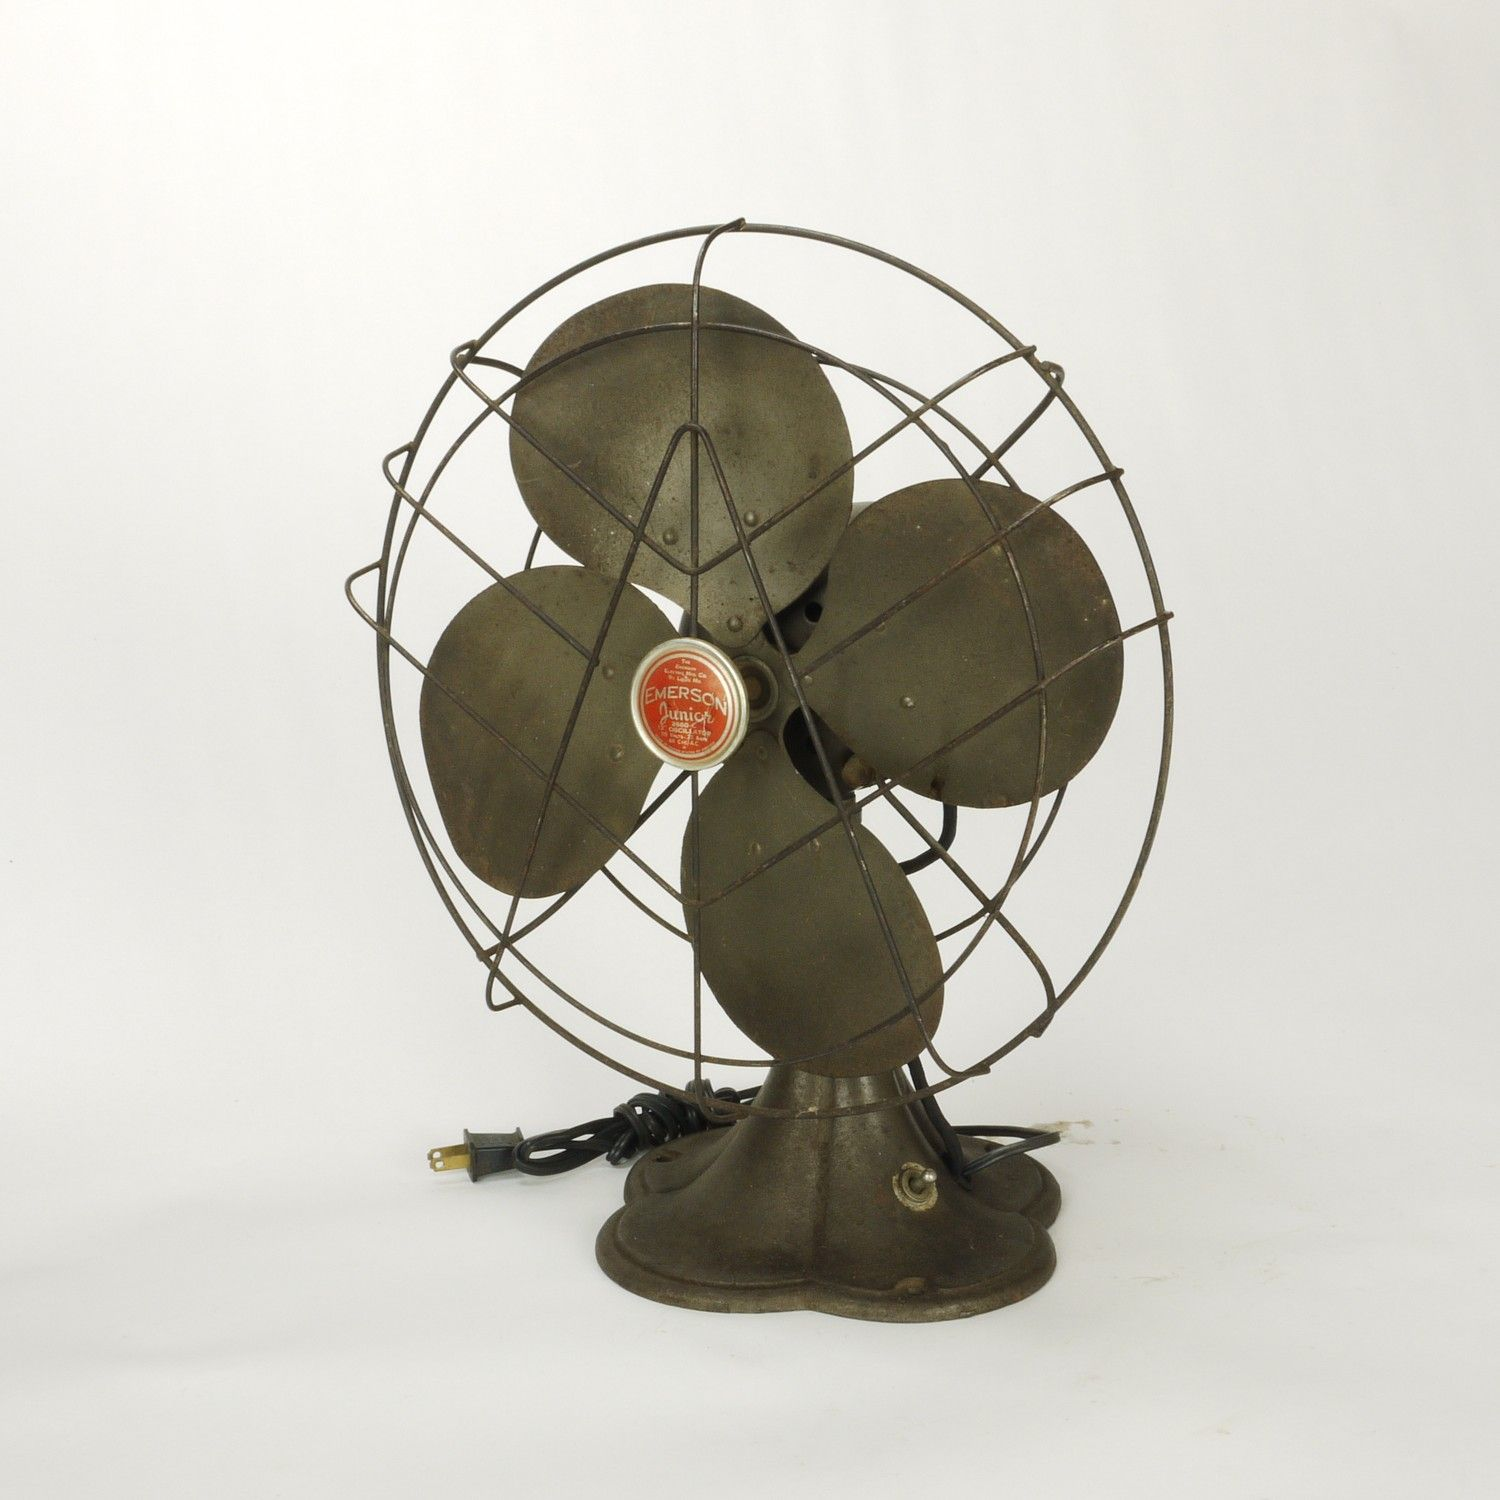 Vintage Fan just found an emerson electric junior fan (1939-1949) at a local